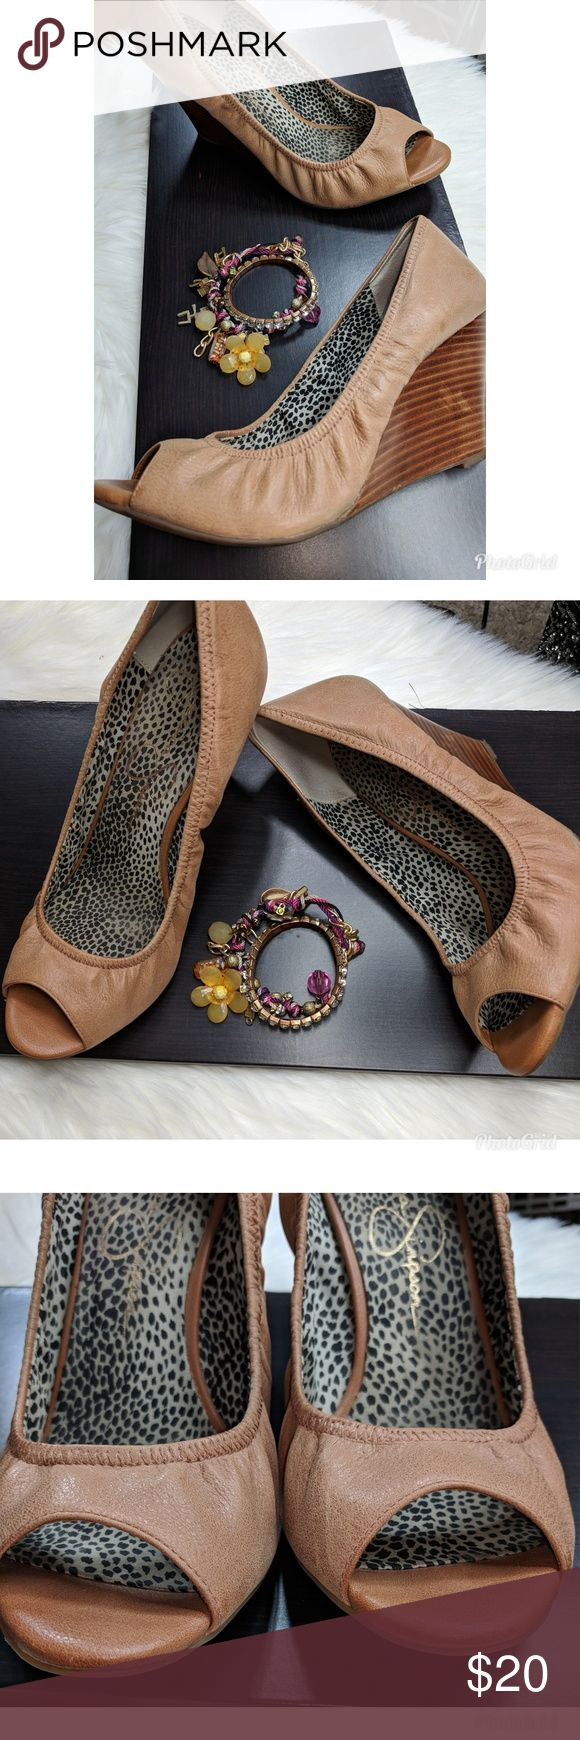 Jessica Simpson Camel Wedges Jessica Simpson Camel Wedges   Shoes have been previously Loved   Shoes don't have size on them  Please look at chart and pictures of size chart    Wear shown in pictures  Suffering on back of the right shoe  Always open to offers  I ship fast Jessica Simpson Shoes Wedges